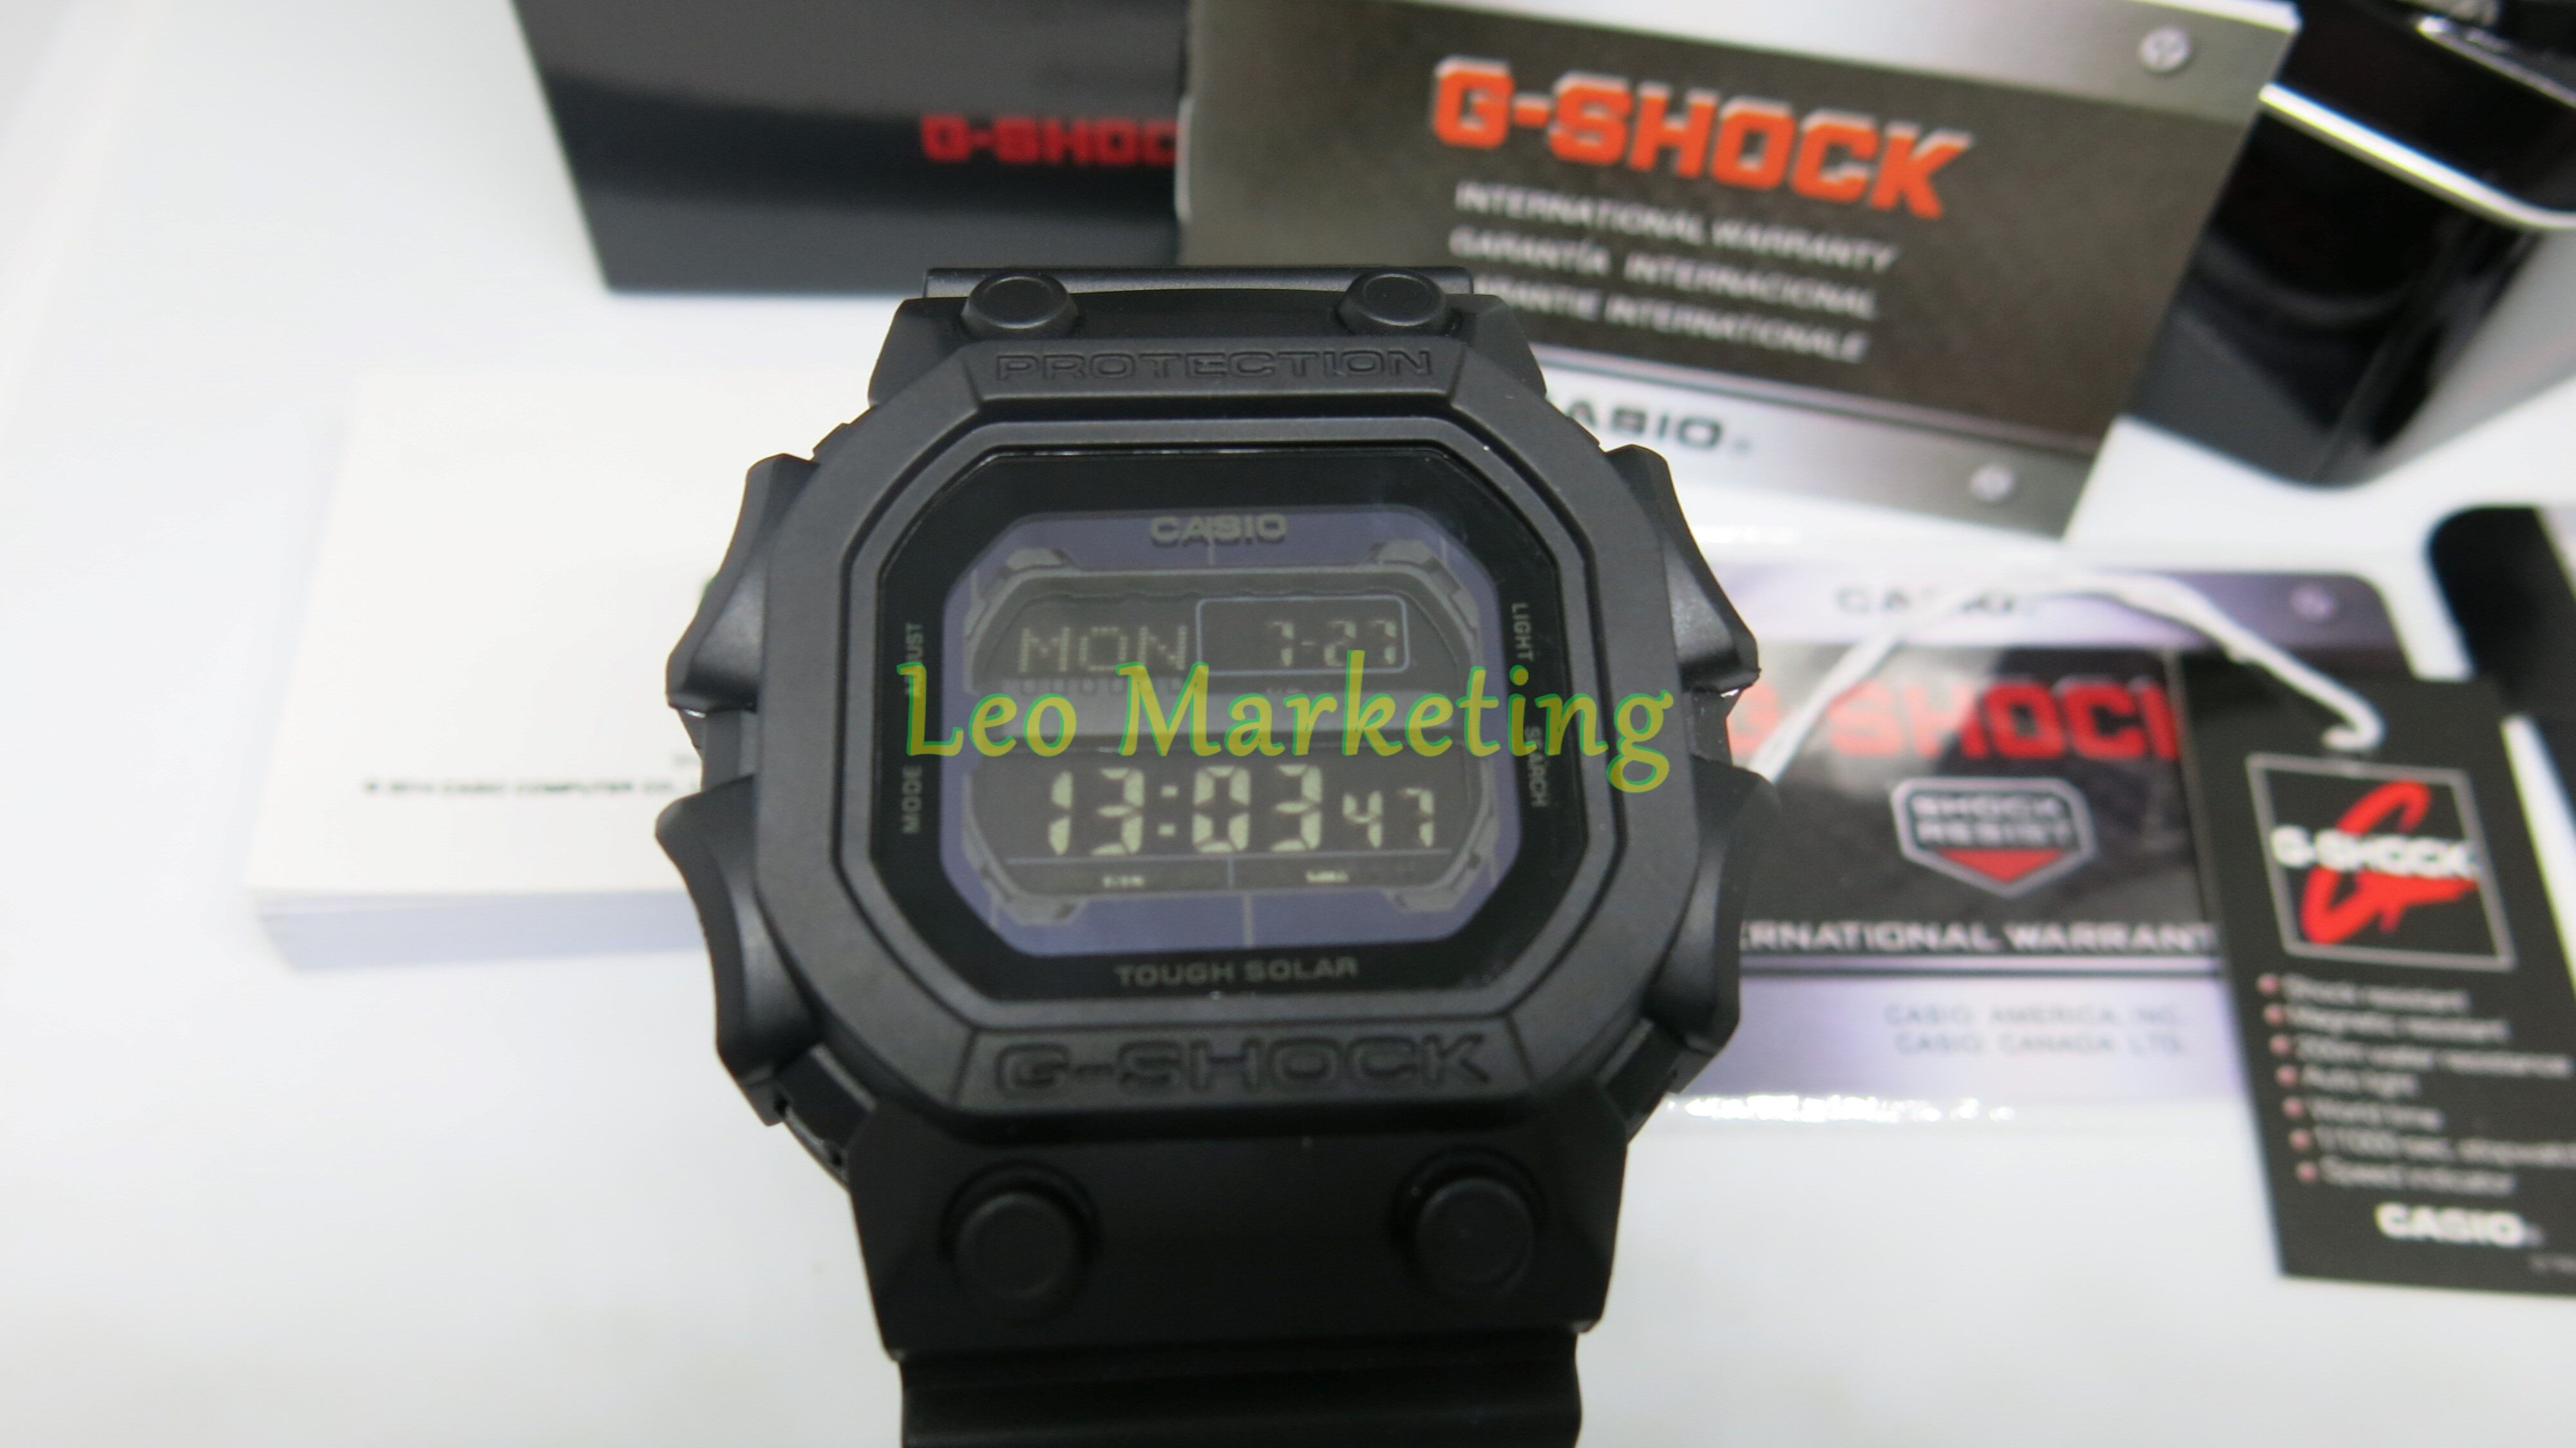 Leo Marketing 100%Original New Fashion Casi o G Sh0ck King Digital Time Display Design Shock Resistant 200m Water Resistant Ready Stock